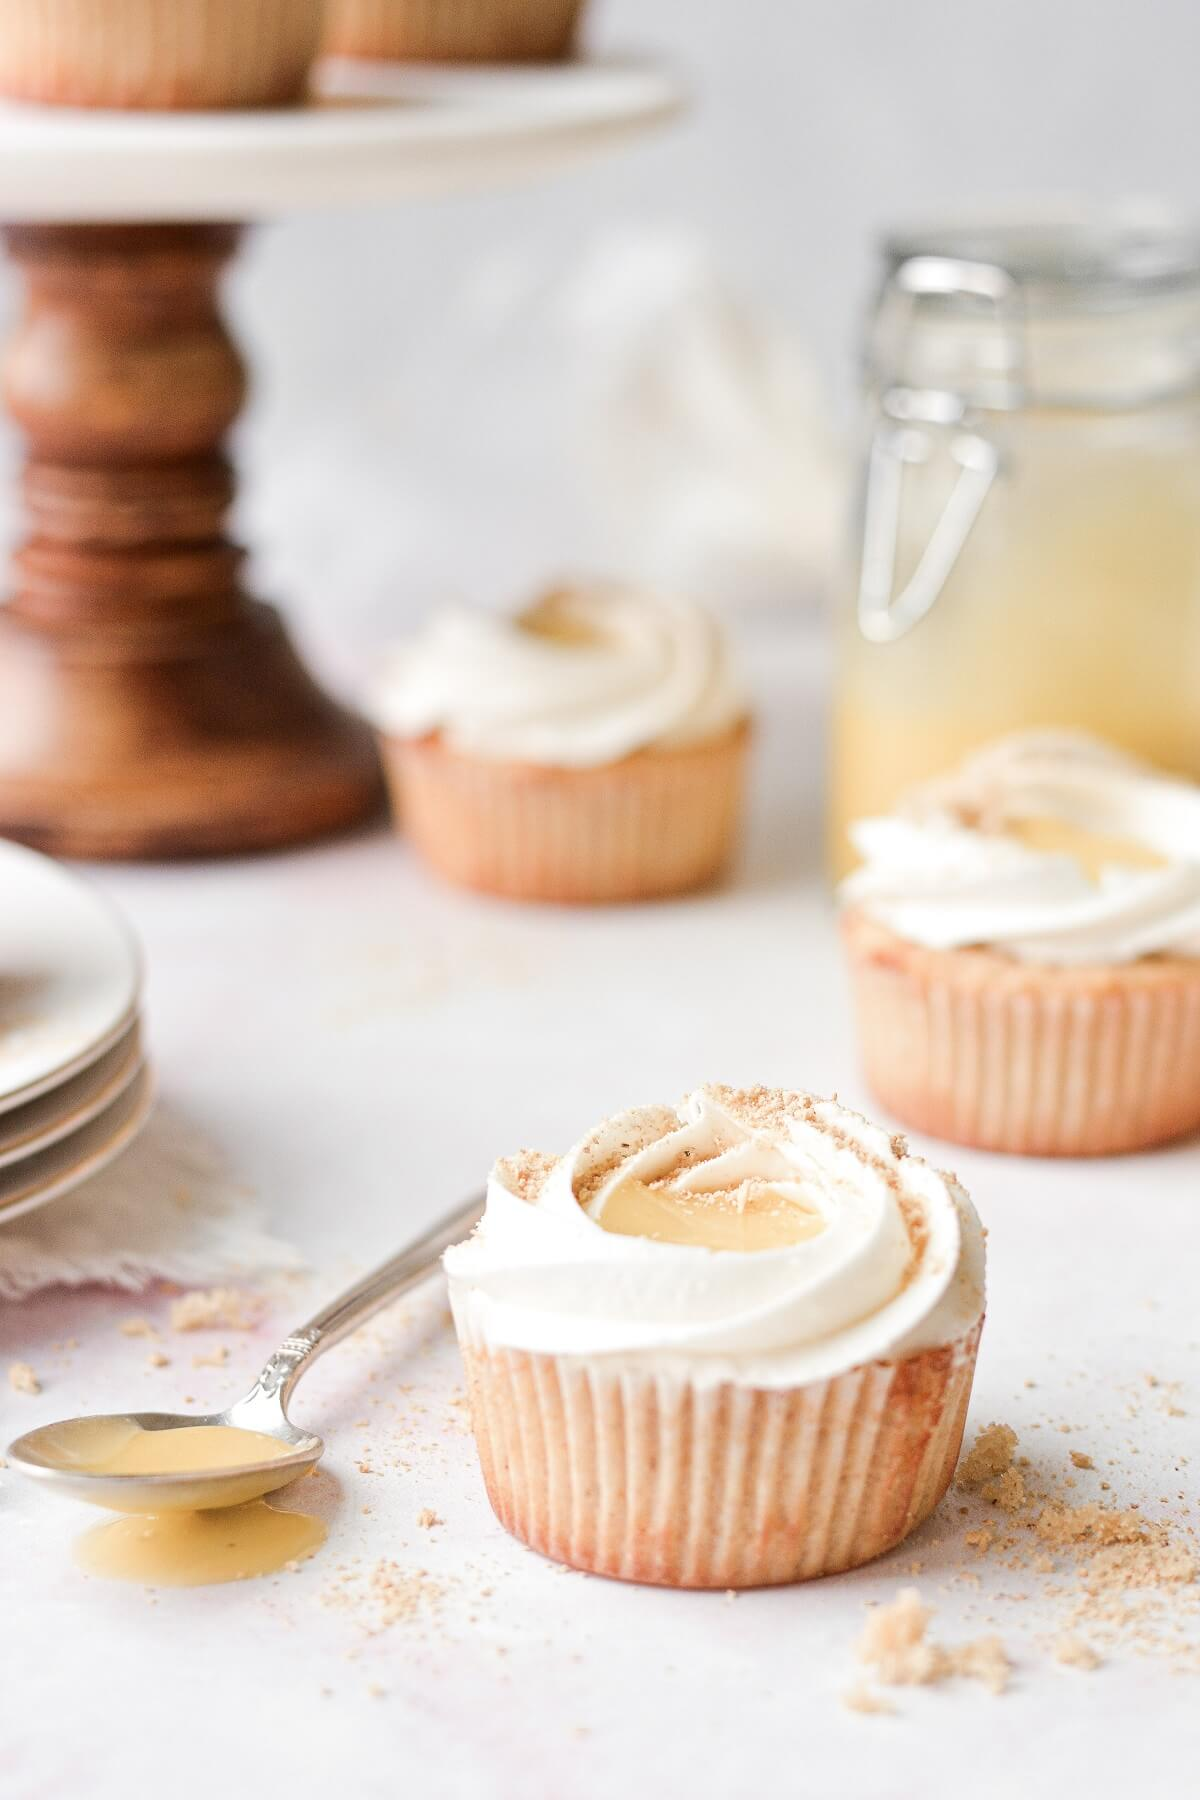 A key lime pie cupcake, next to a spoonful of lime curd.